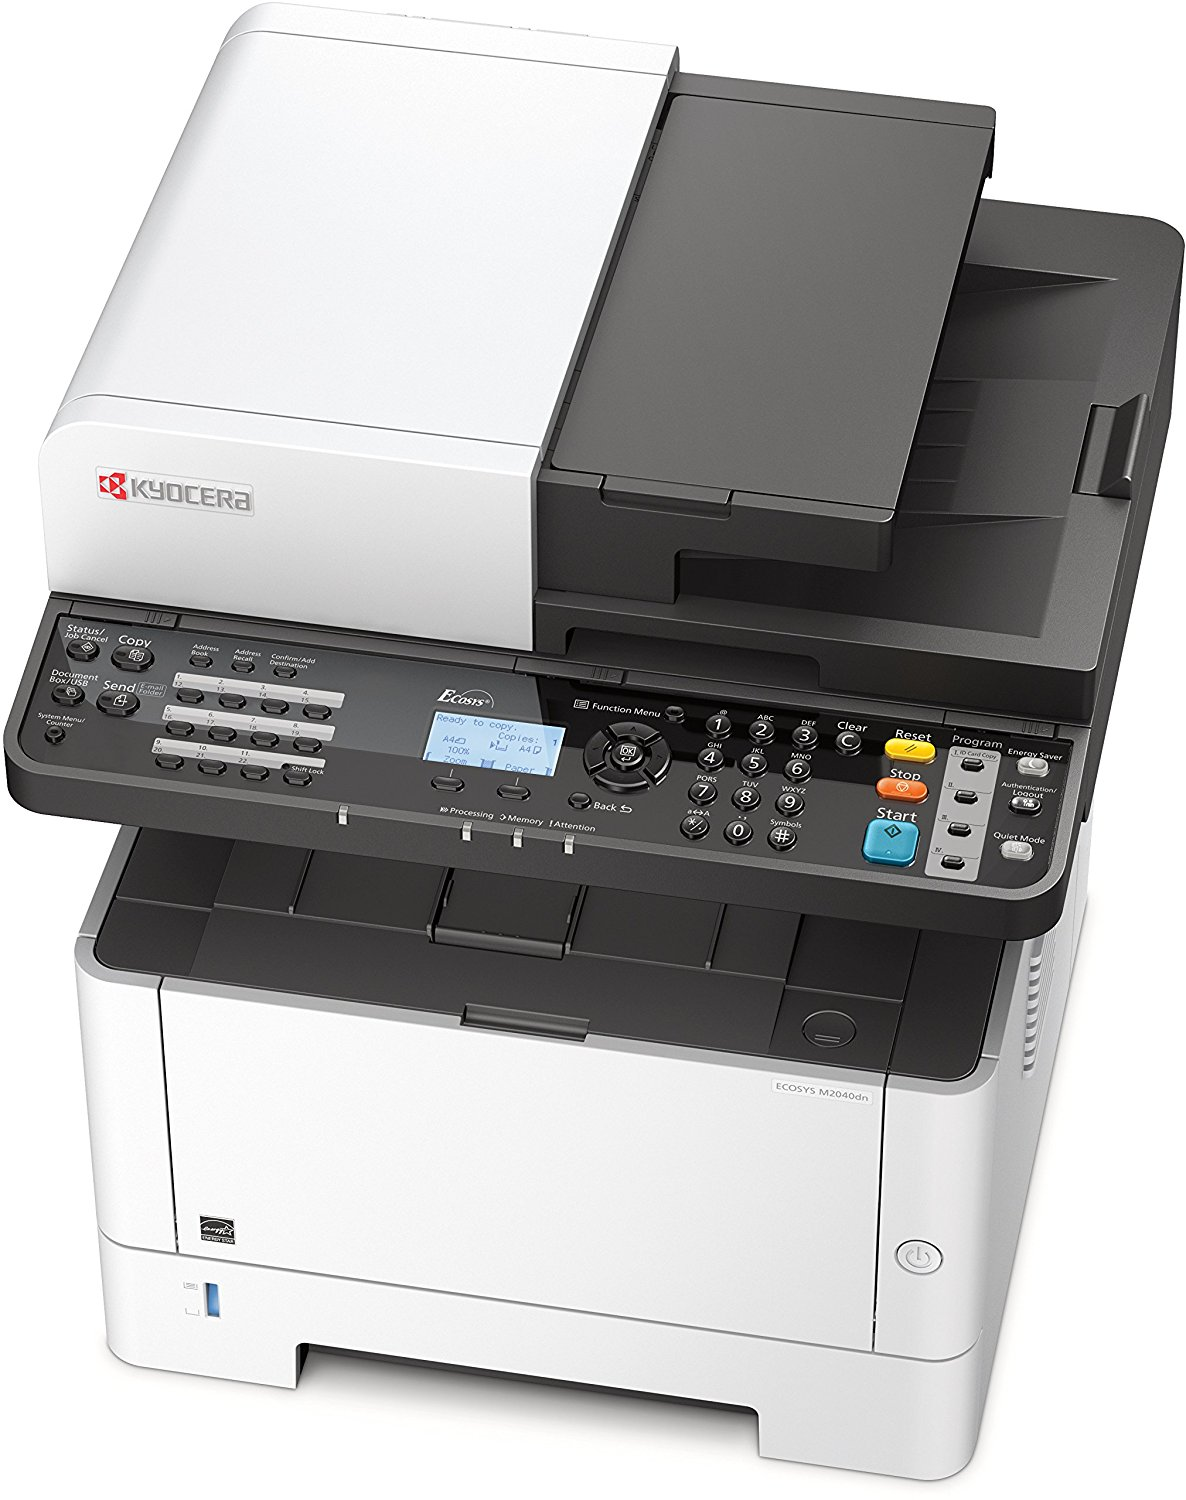 Kyocera TASKalfa 7550ci MFP PCL5e/PCL6/KPDL Driver for Mac Download